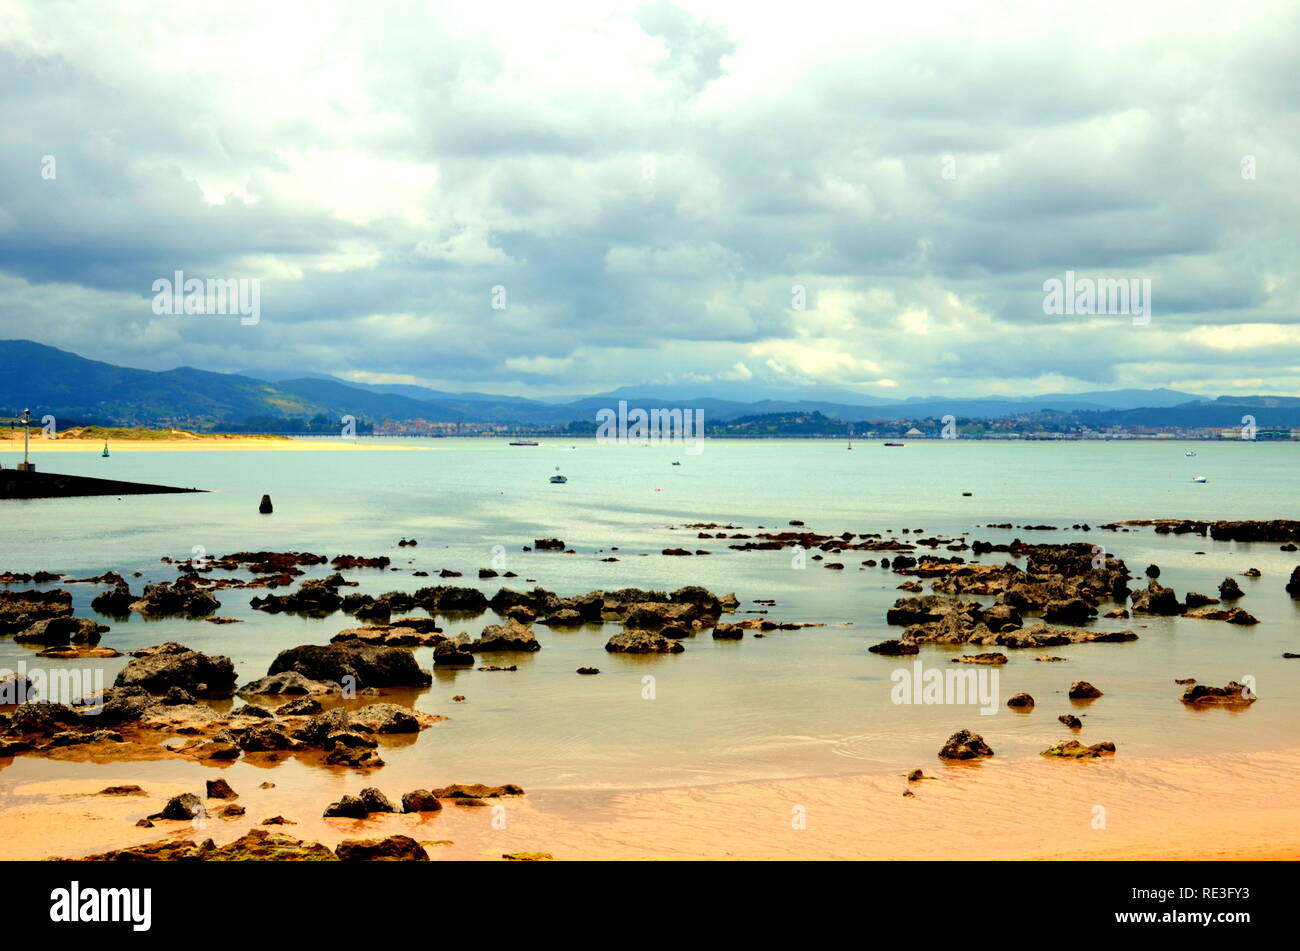 Image of one of the beaches of Asturias at low tide, Cantabria, Spain - Stock Image